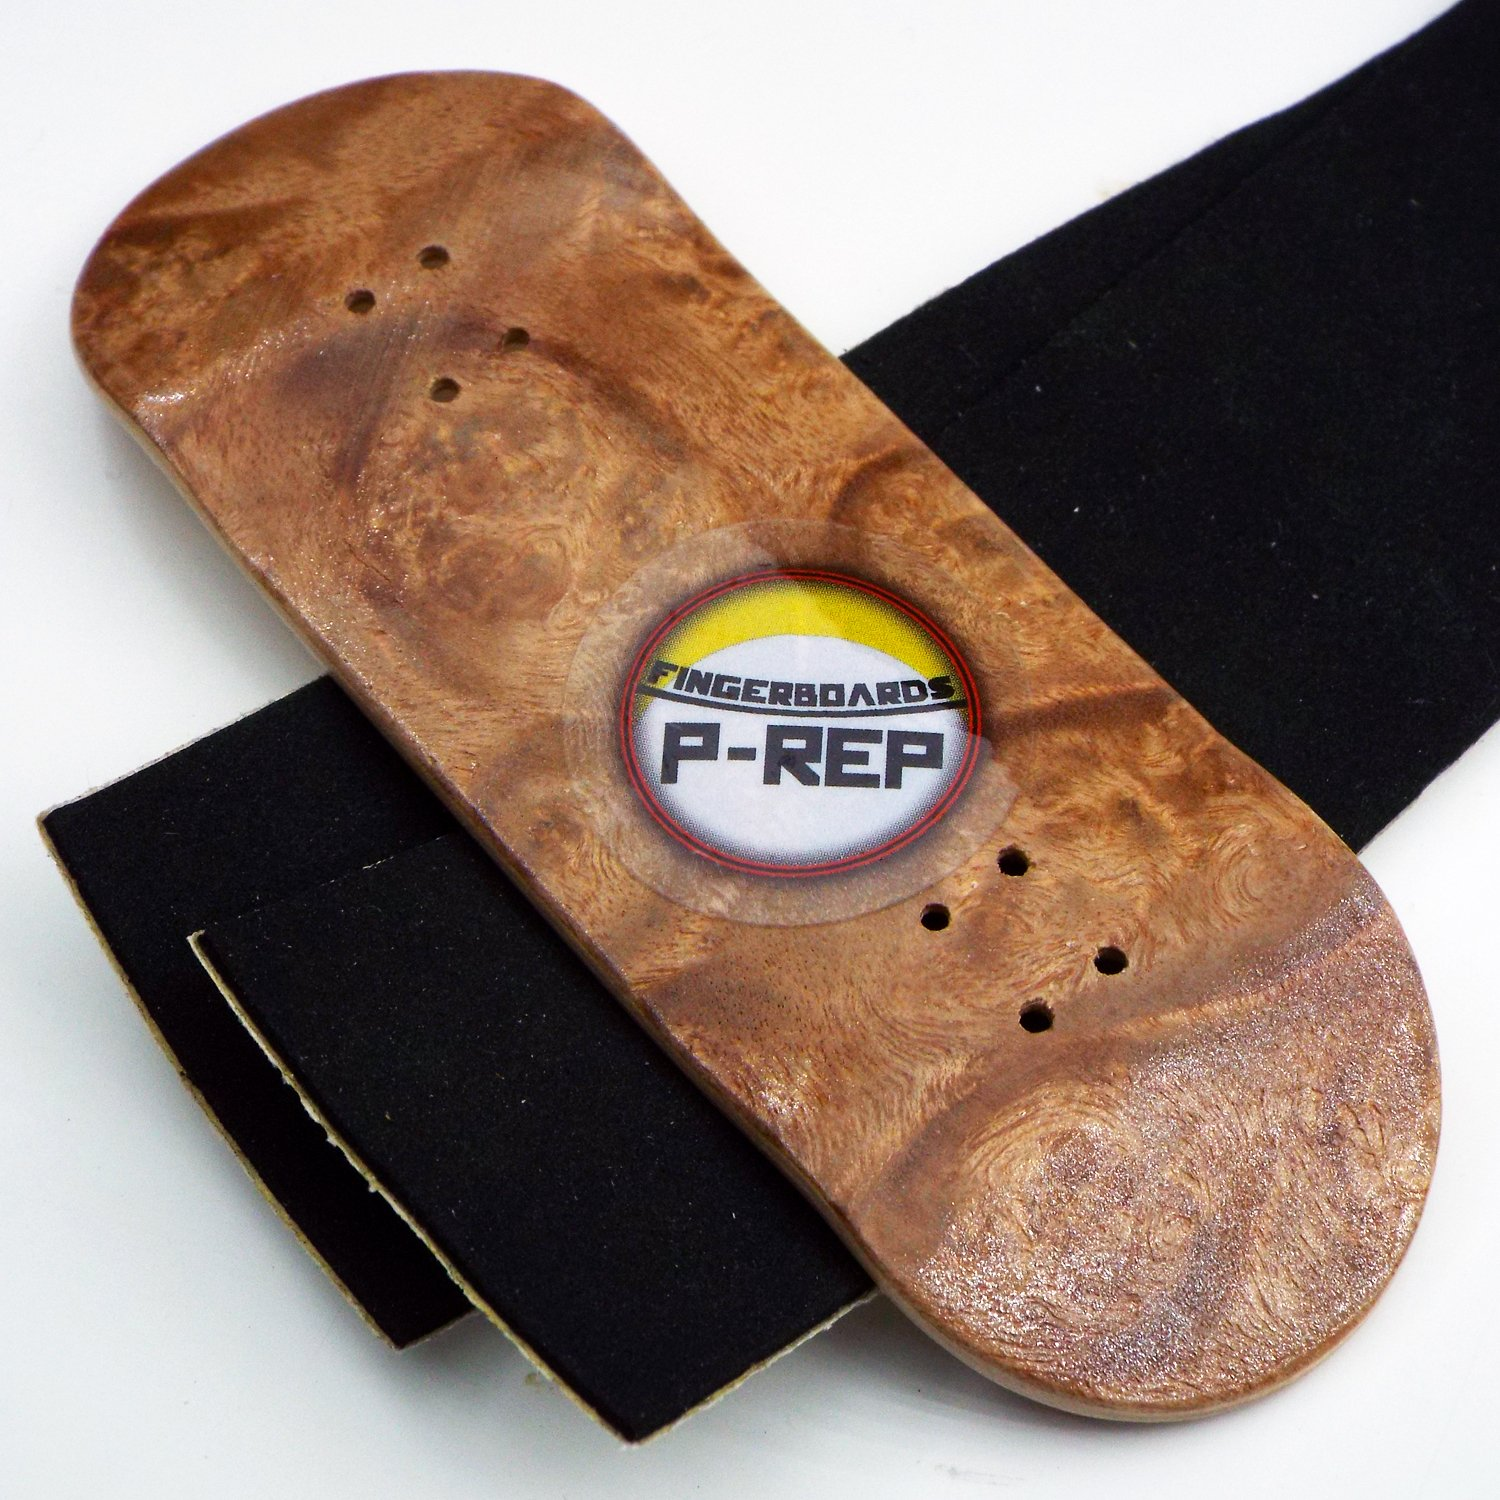 P-Rep TURNT UP STORM 34mm Complete Wooden Fingerboard w CNC Lathed Bearing